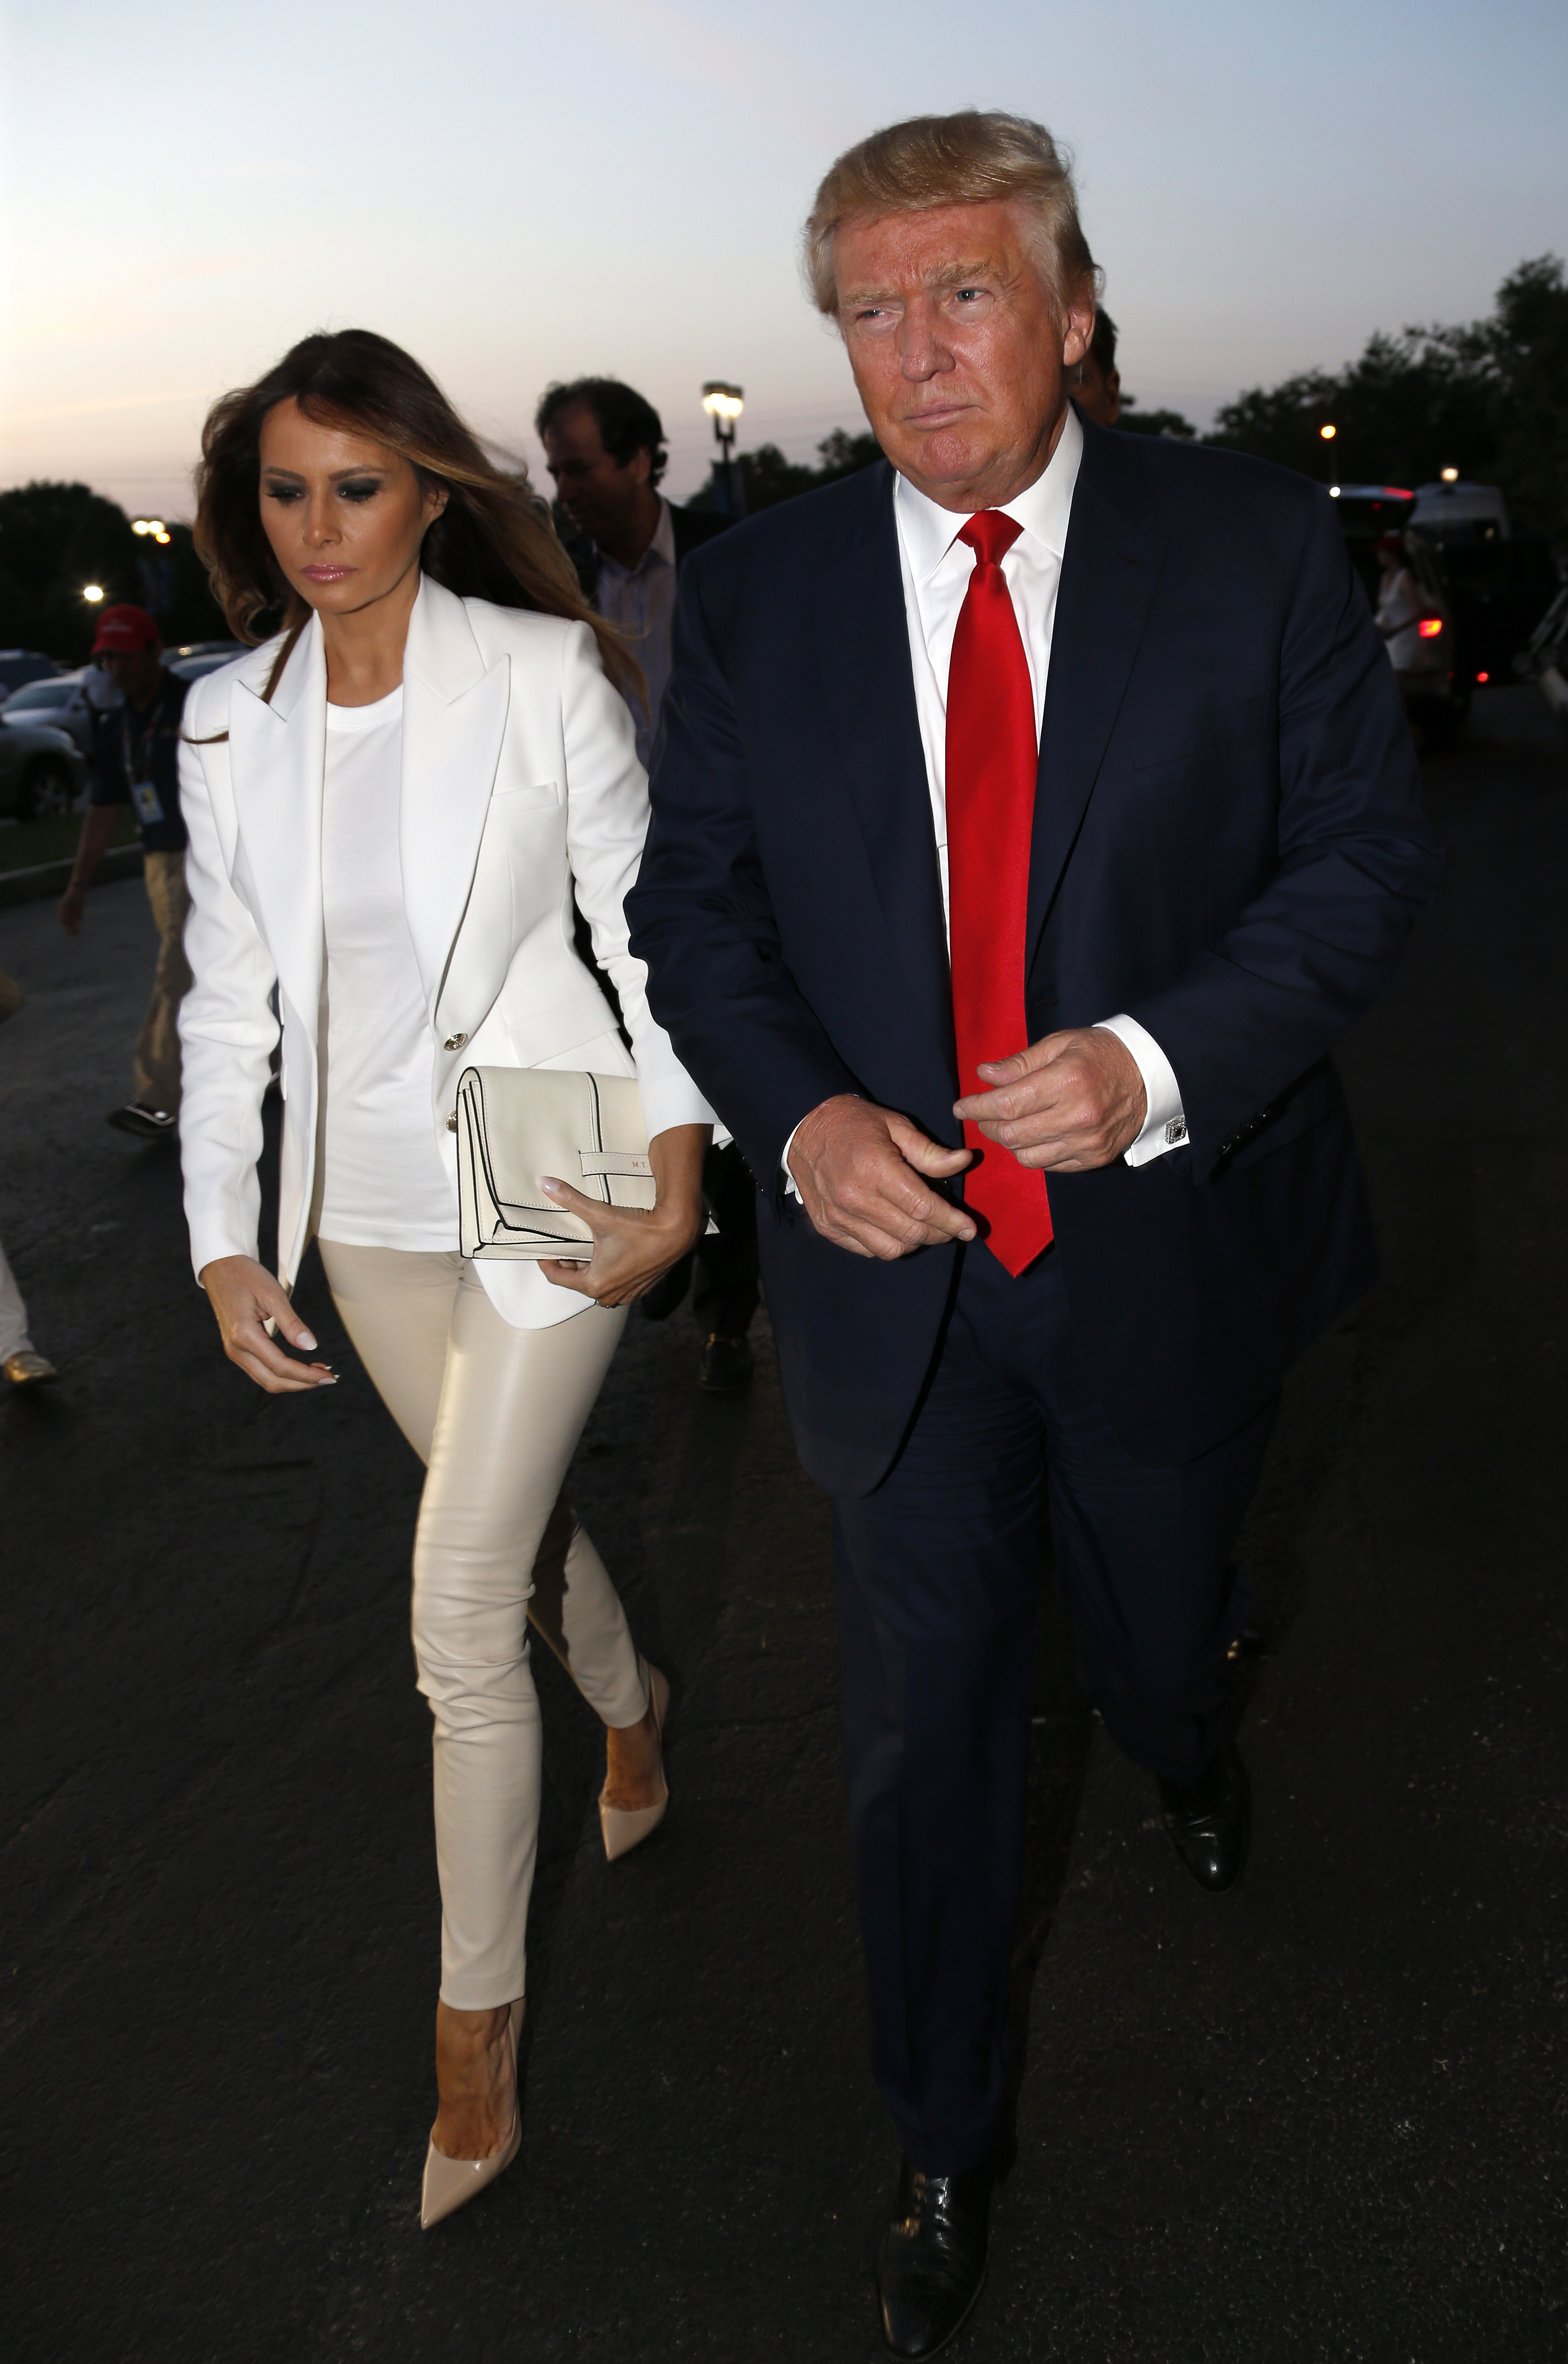 Donald Trump and his wife Melania Trump attend the Williams sisters match on day nine of the 2015 US Open at USTA Billie Jean King National Tennis Center on Sept. 8, 2015 in New York City.